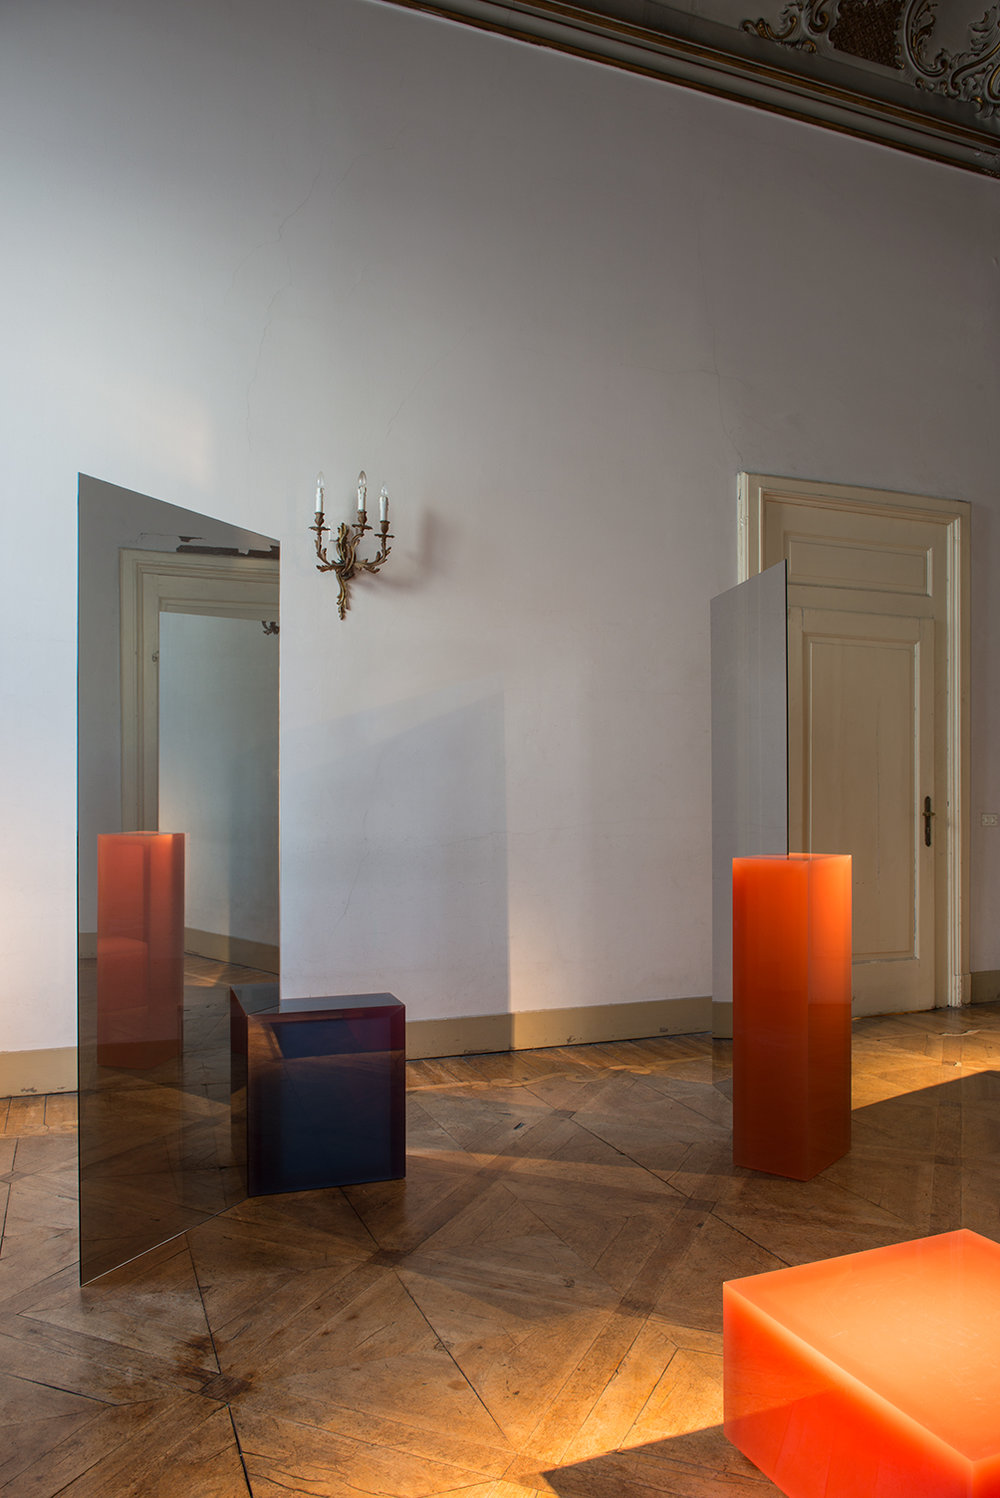 DEUX mirrors  - Sabine Marcelis 1-way mirror, resin block2017Mirror 1:Block: 25 x 36,5 x 100 cmMirror 2:Block: 20 x 67 x 55 cmMirrors each: 80 x 200 cm  Price on request